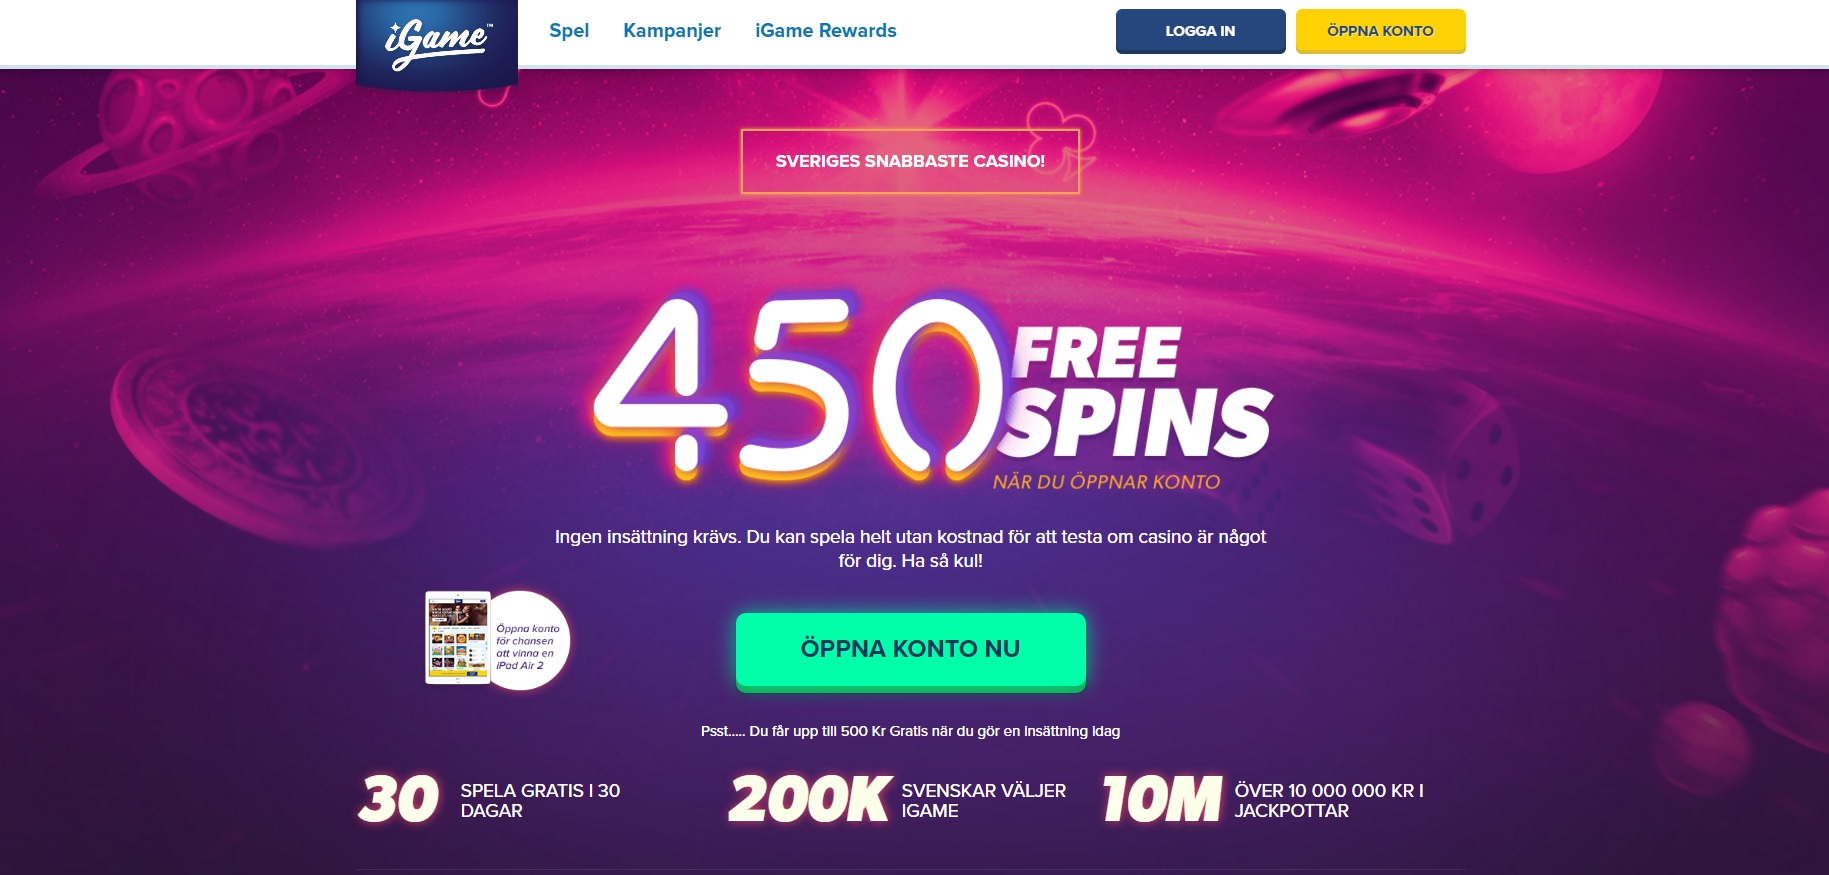 igame casino med free spins